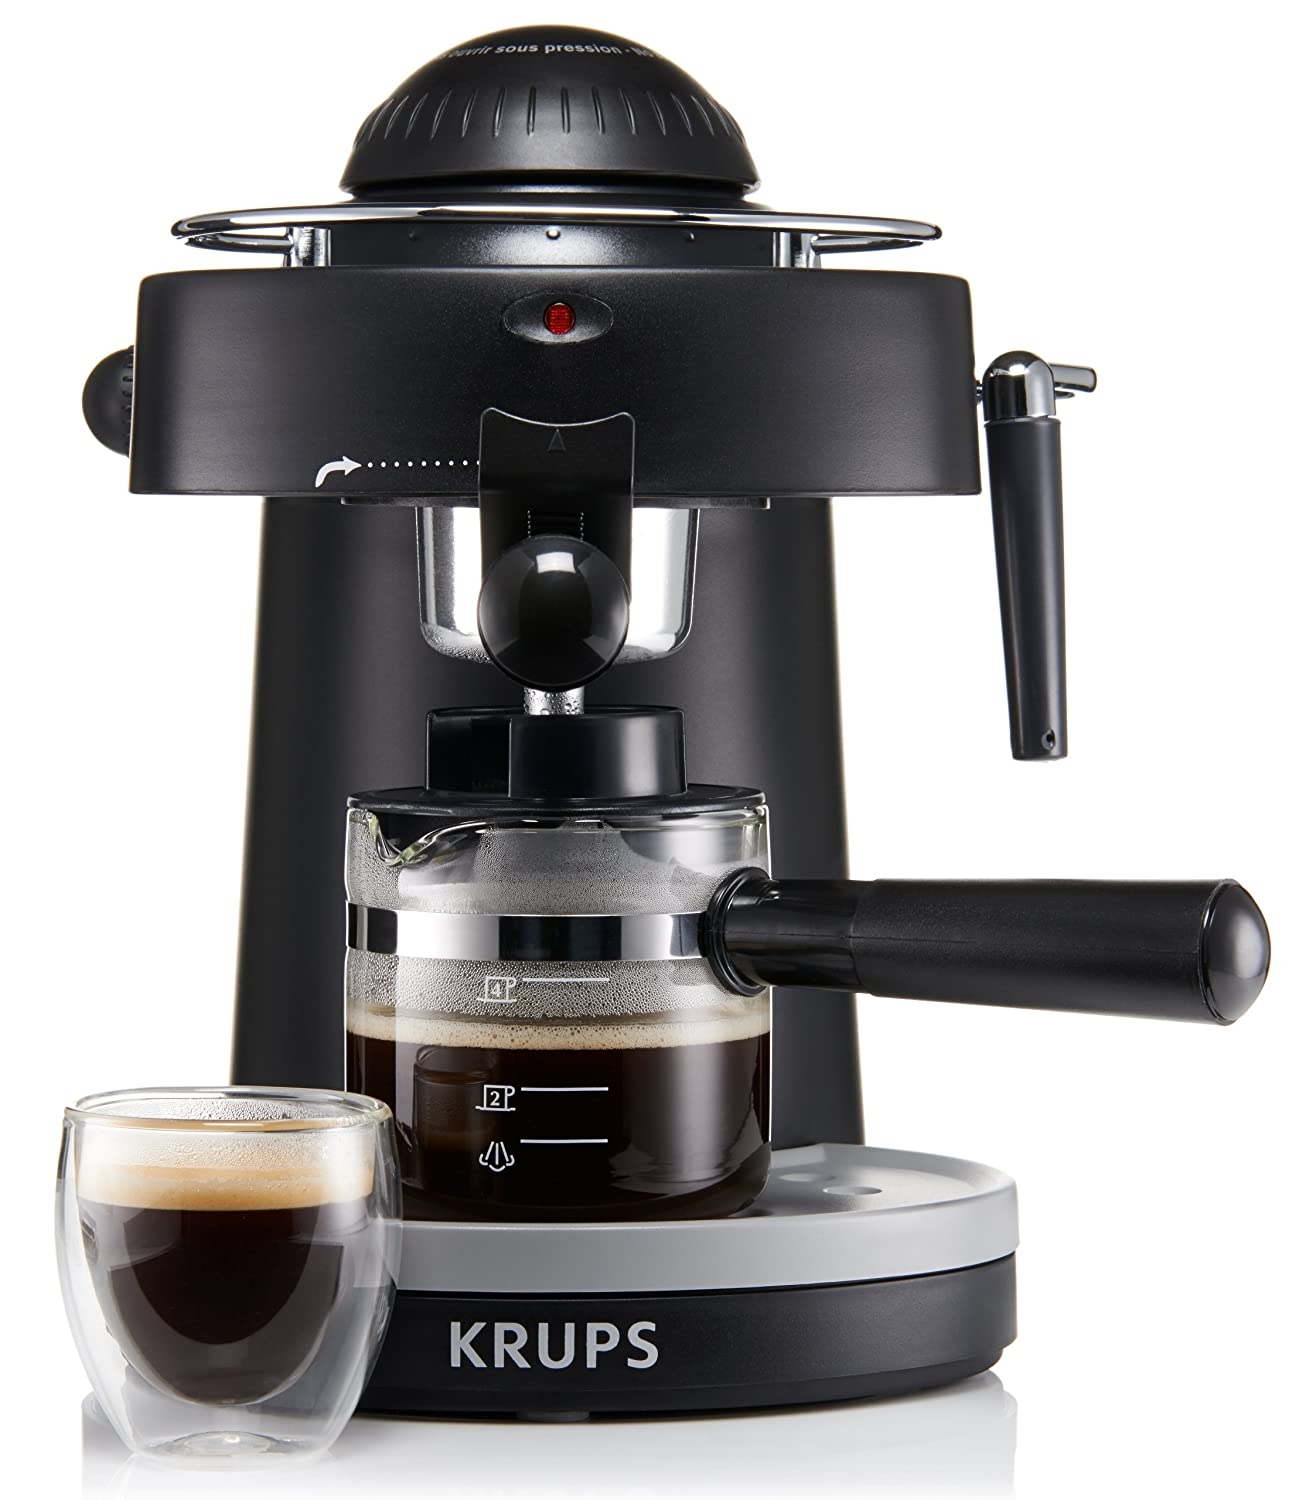 Electronic Steam Coffee Machine amazon com krups xp1000 steam espresso machine with frothing nozzle for cappuccino black kitchen dining